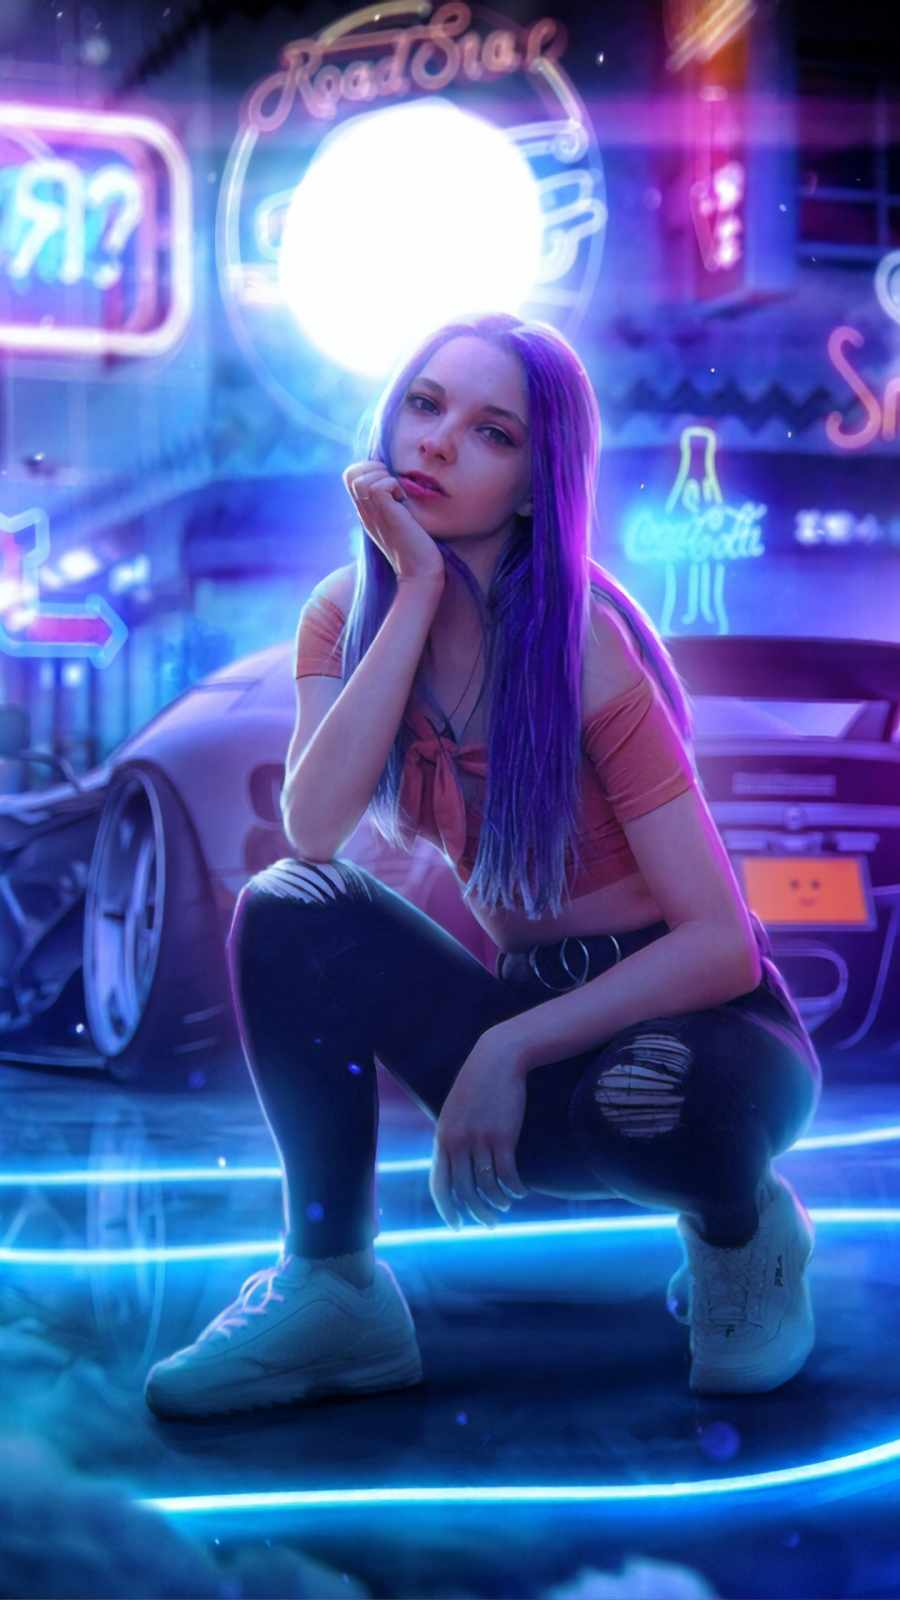 cyber girl with cars